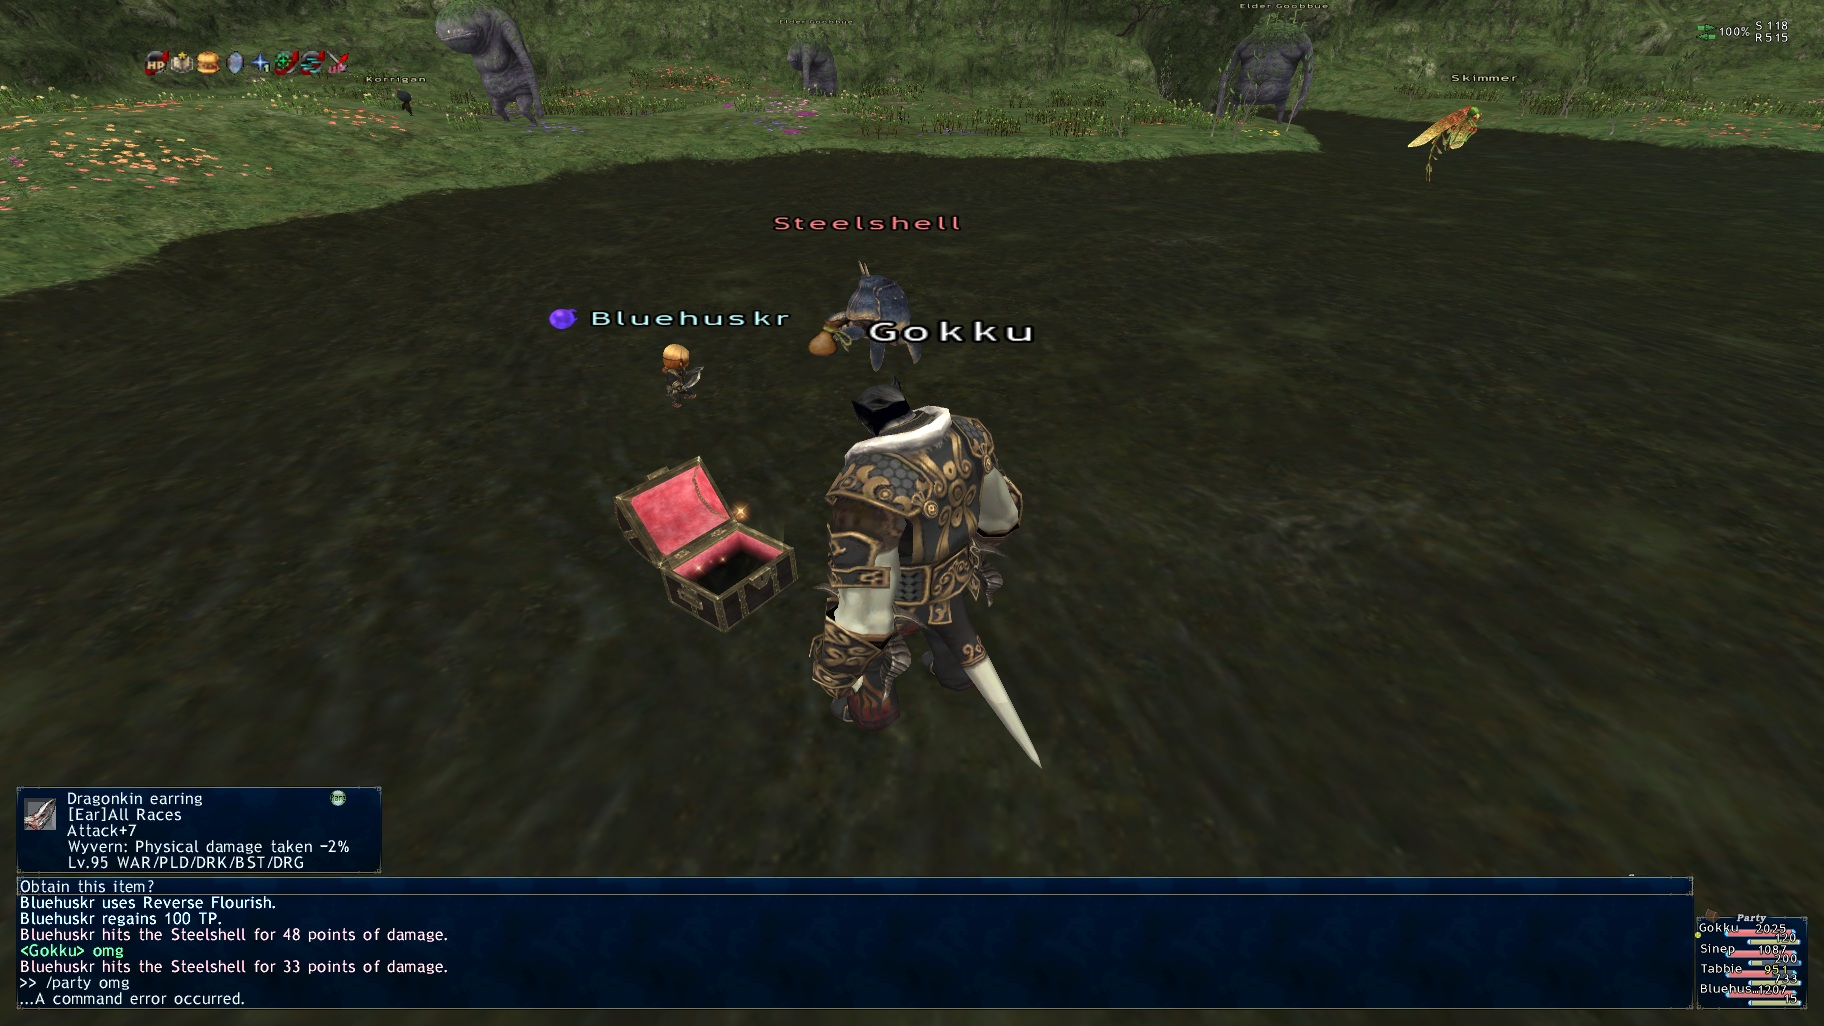 gokku ffxi leather middle delkfutts caves quicksand tower sign grind decide back found find confirmed sightings cooking treasure casket findings torque unable dungeon location share thread